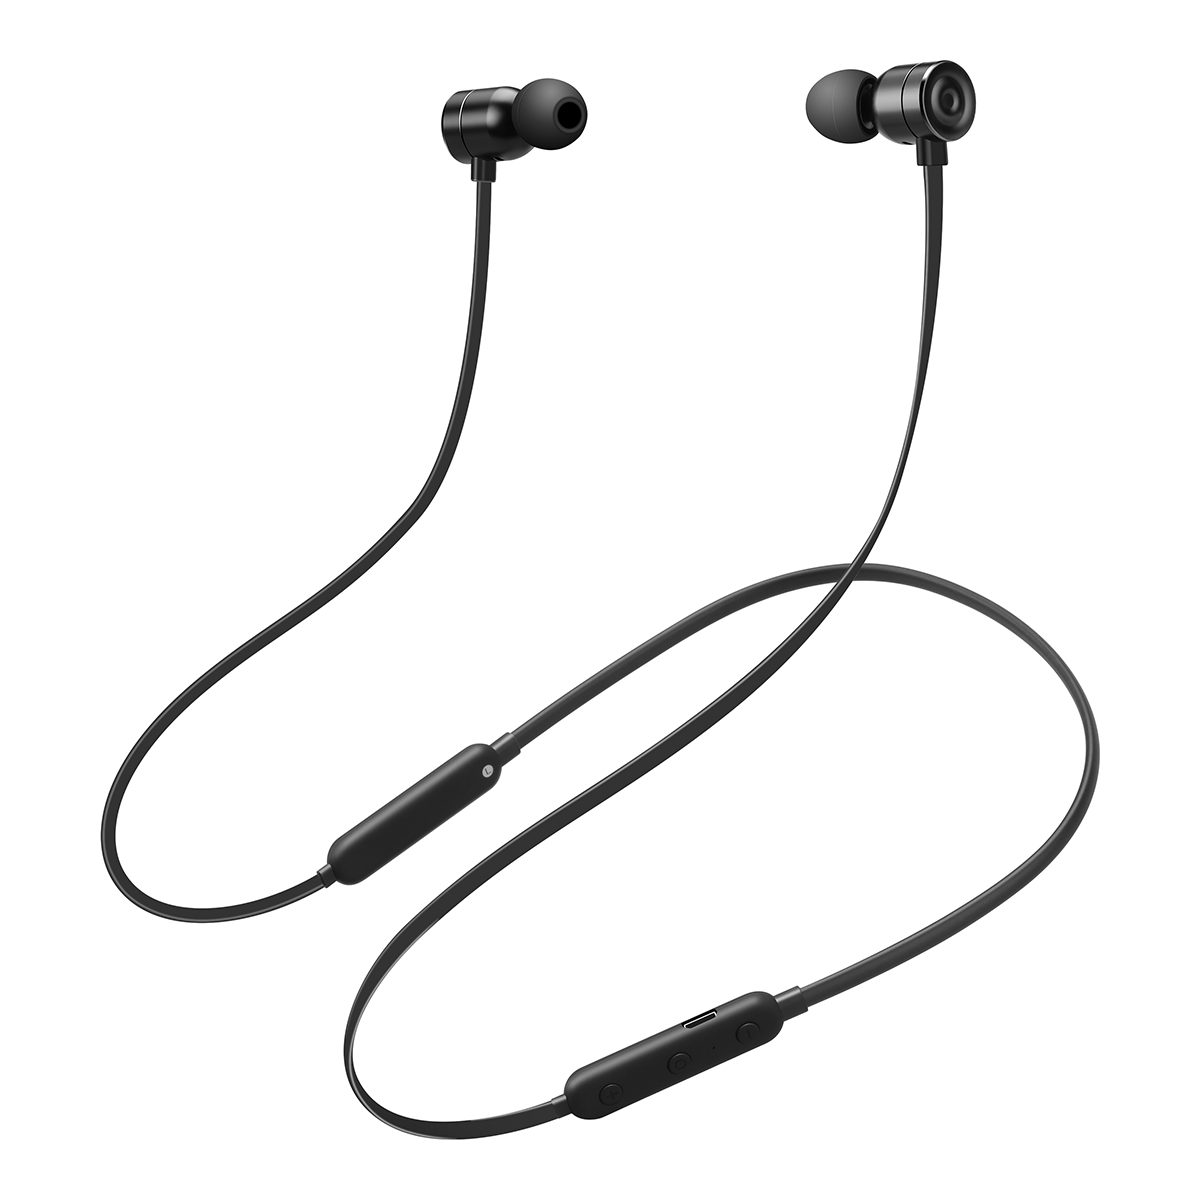 Wireless Headphones, In-Ear Bluetooth Headphones with Mic, Lightweight Magnetic Earbuds, Sports Headsets for Workout, Gym, Jogging, Running